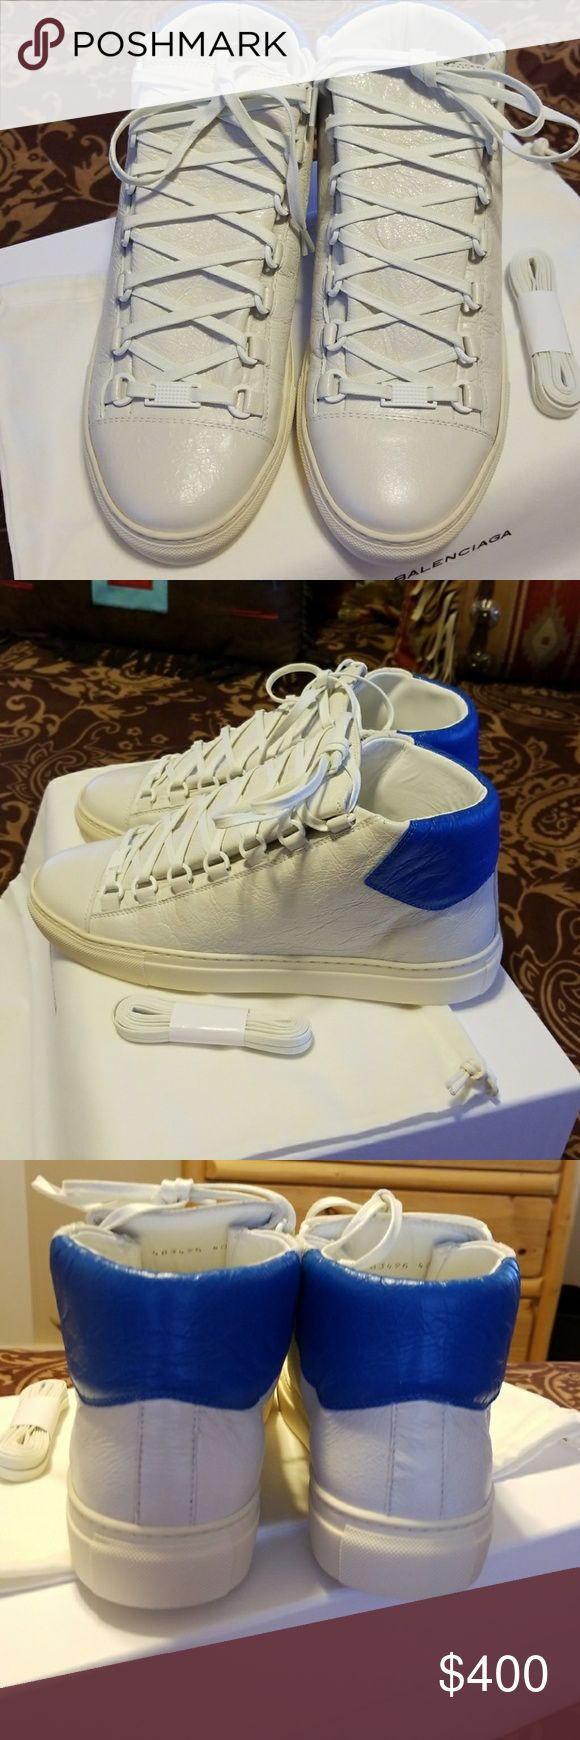 Balenciaga Arena Sneakers MENS ARENA BALENCIAGAS.MANUFACTURED WITH THE HIGHEST OF QUALITY..WHITE WITH   A SPLASH OF BLUE. **BRAND NEW NEVER WORN**COMESXWITH BOX,DUST BAG,EXTRA SHOE STRINGS.. Balenciaga Shoes Sneakers